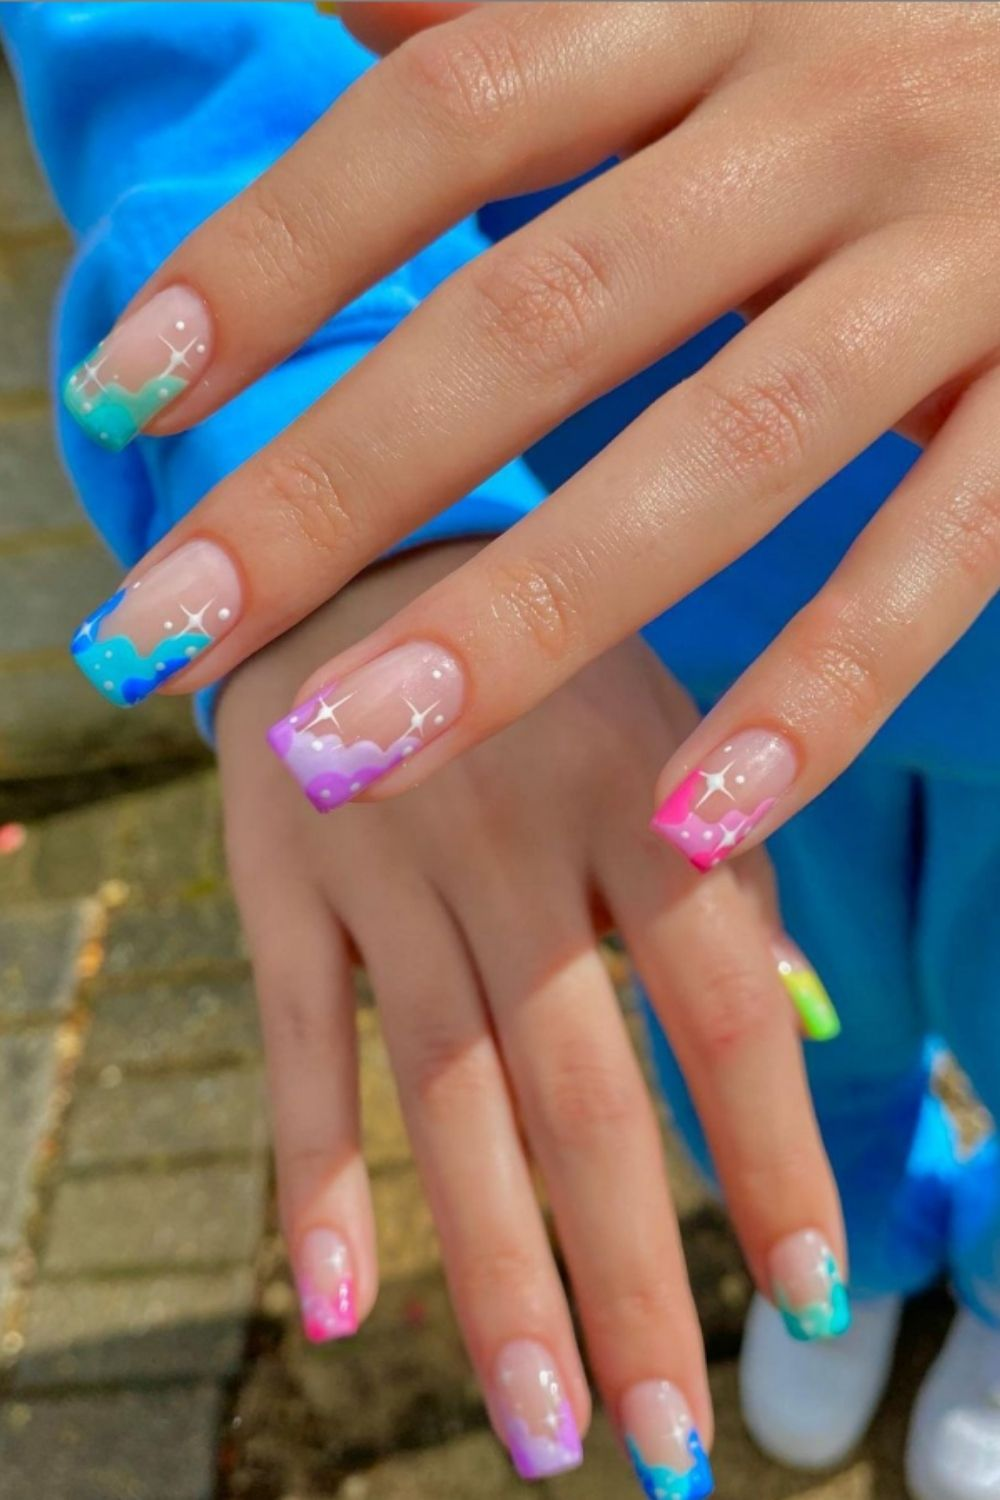 Cute Summer Nails: 40 Nail Designs For Summer Outfit!